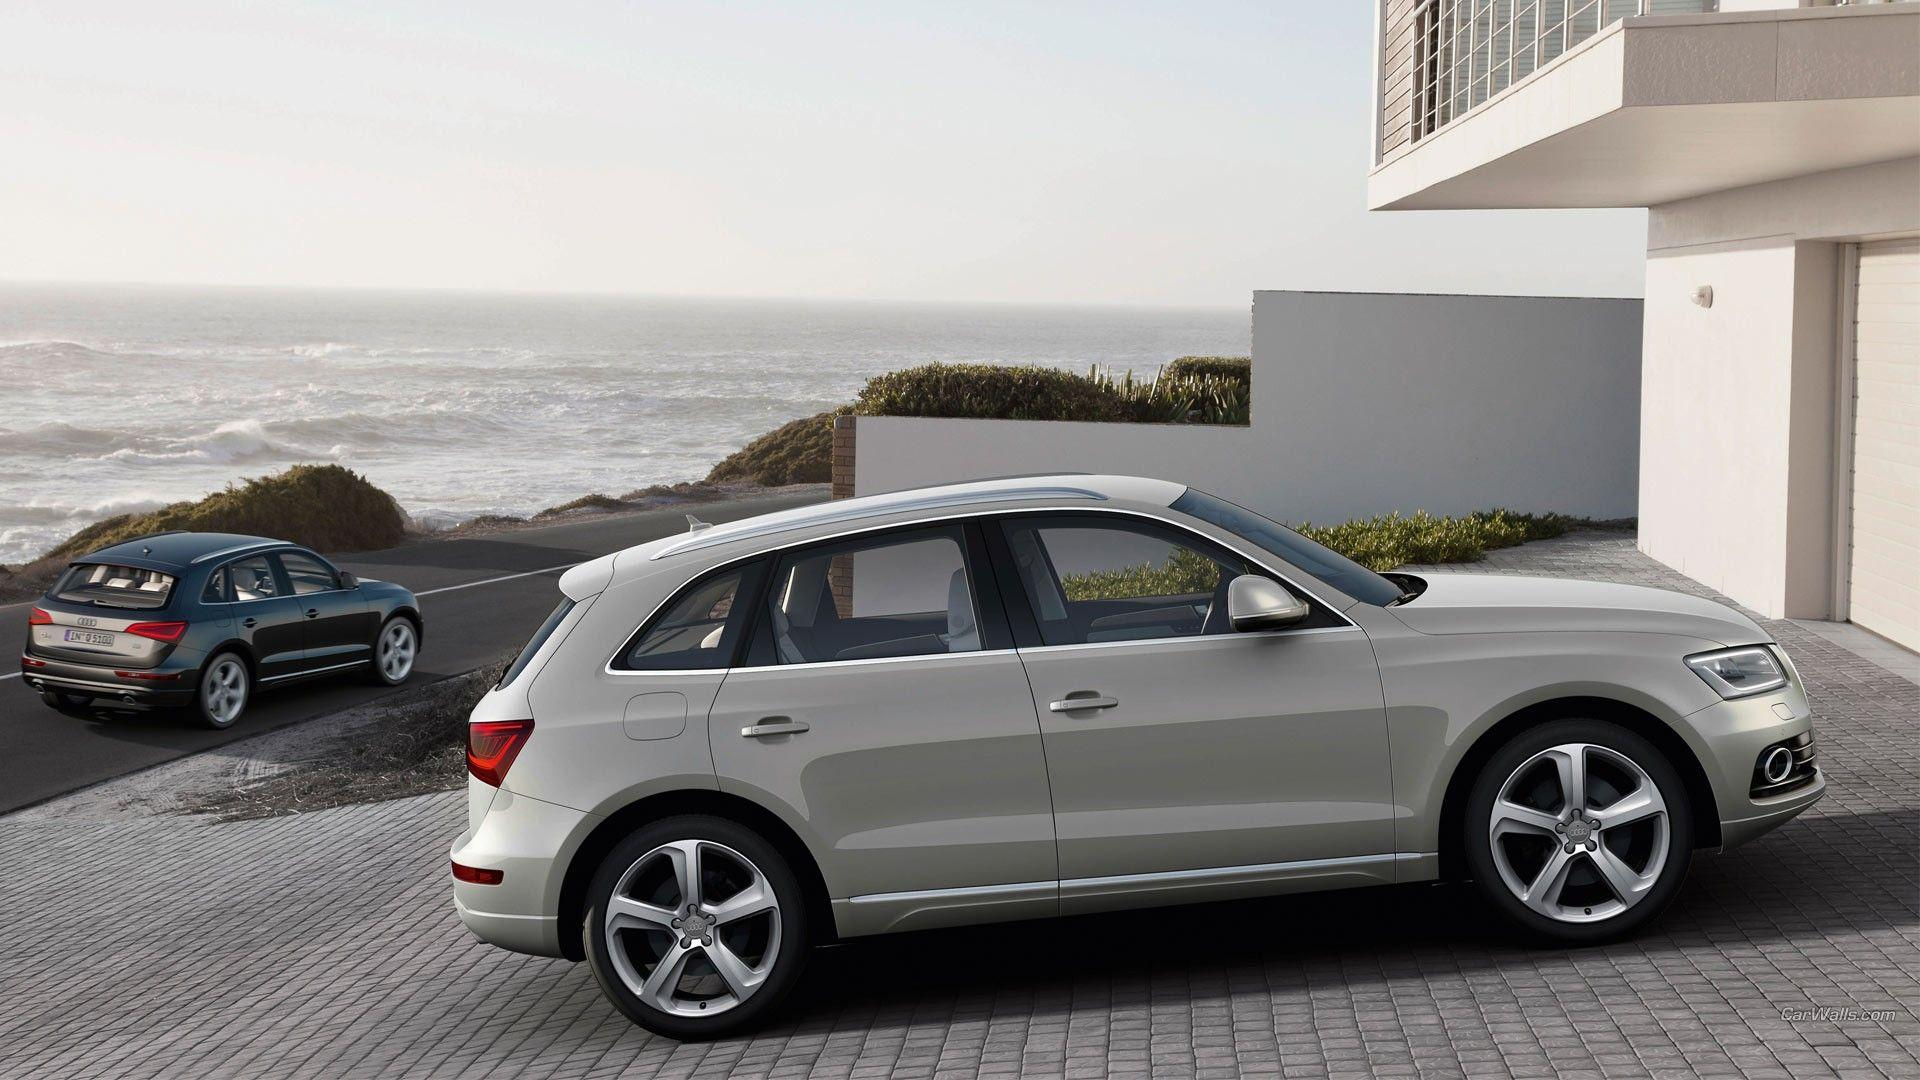 New Audi Q5 Car Pictures HD Wallpaper Images Download Free